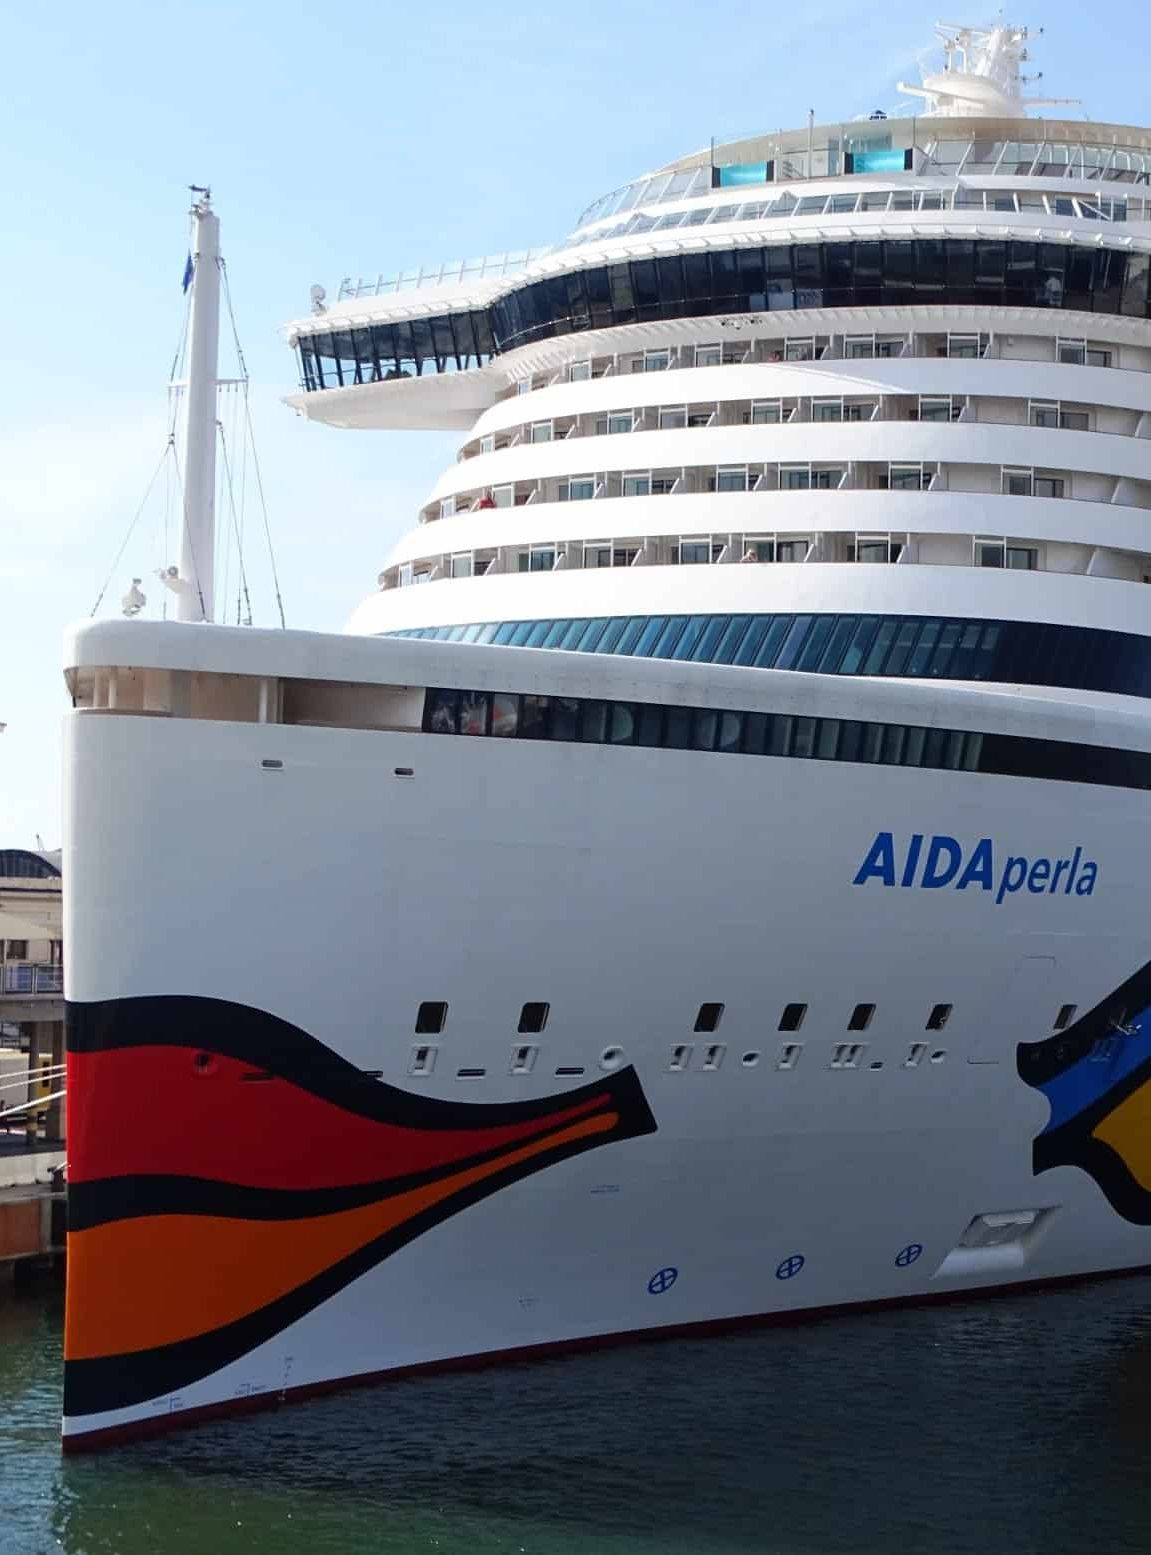 The Aida Perla in images